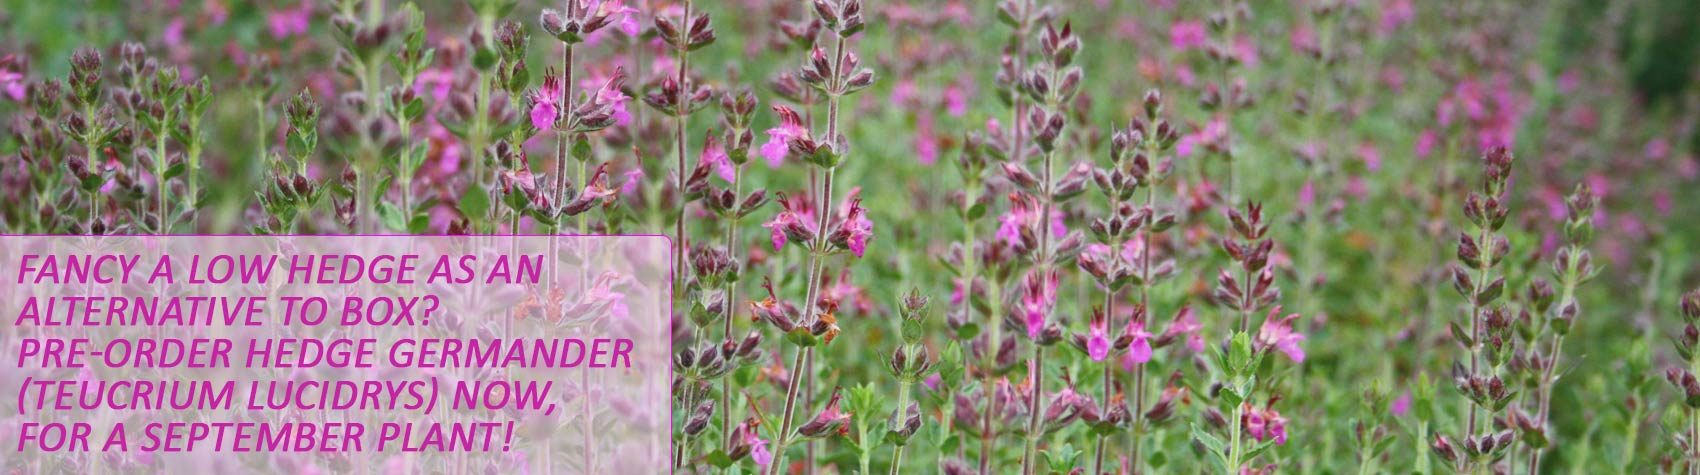 Buy Hedge Germander (Teucrium lucidrys)